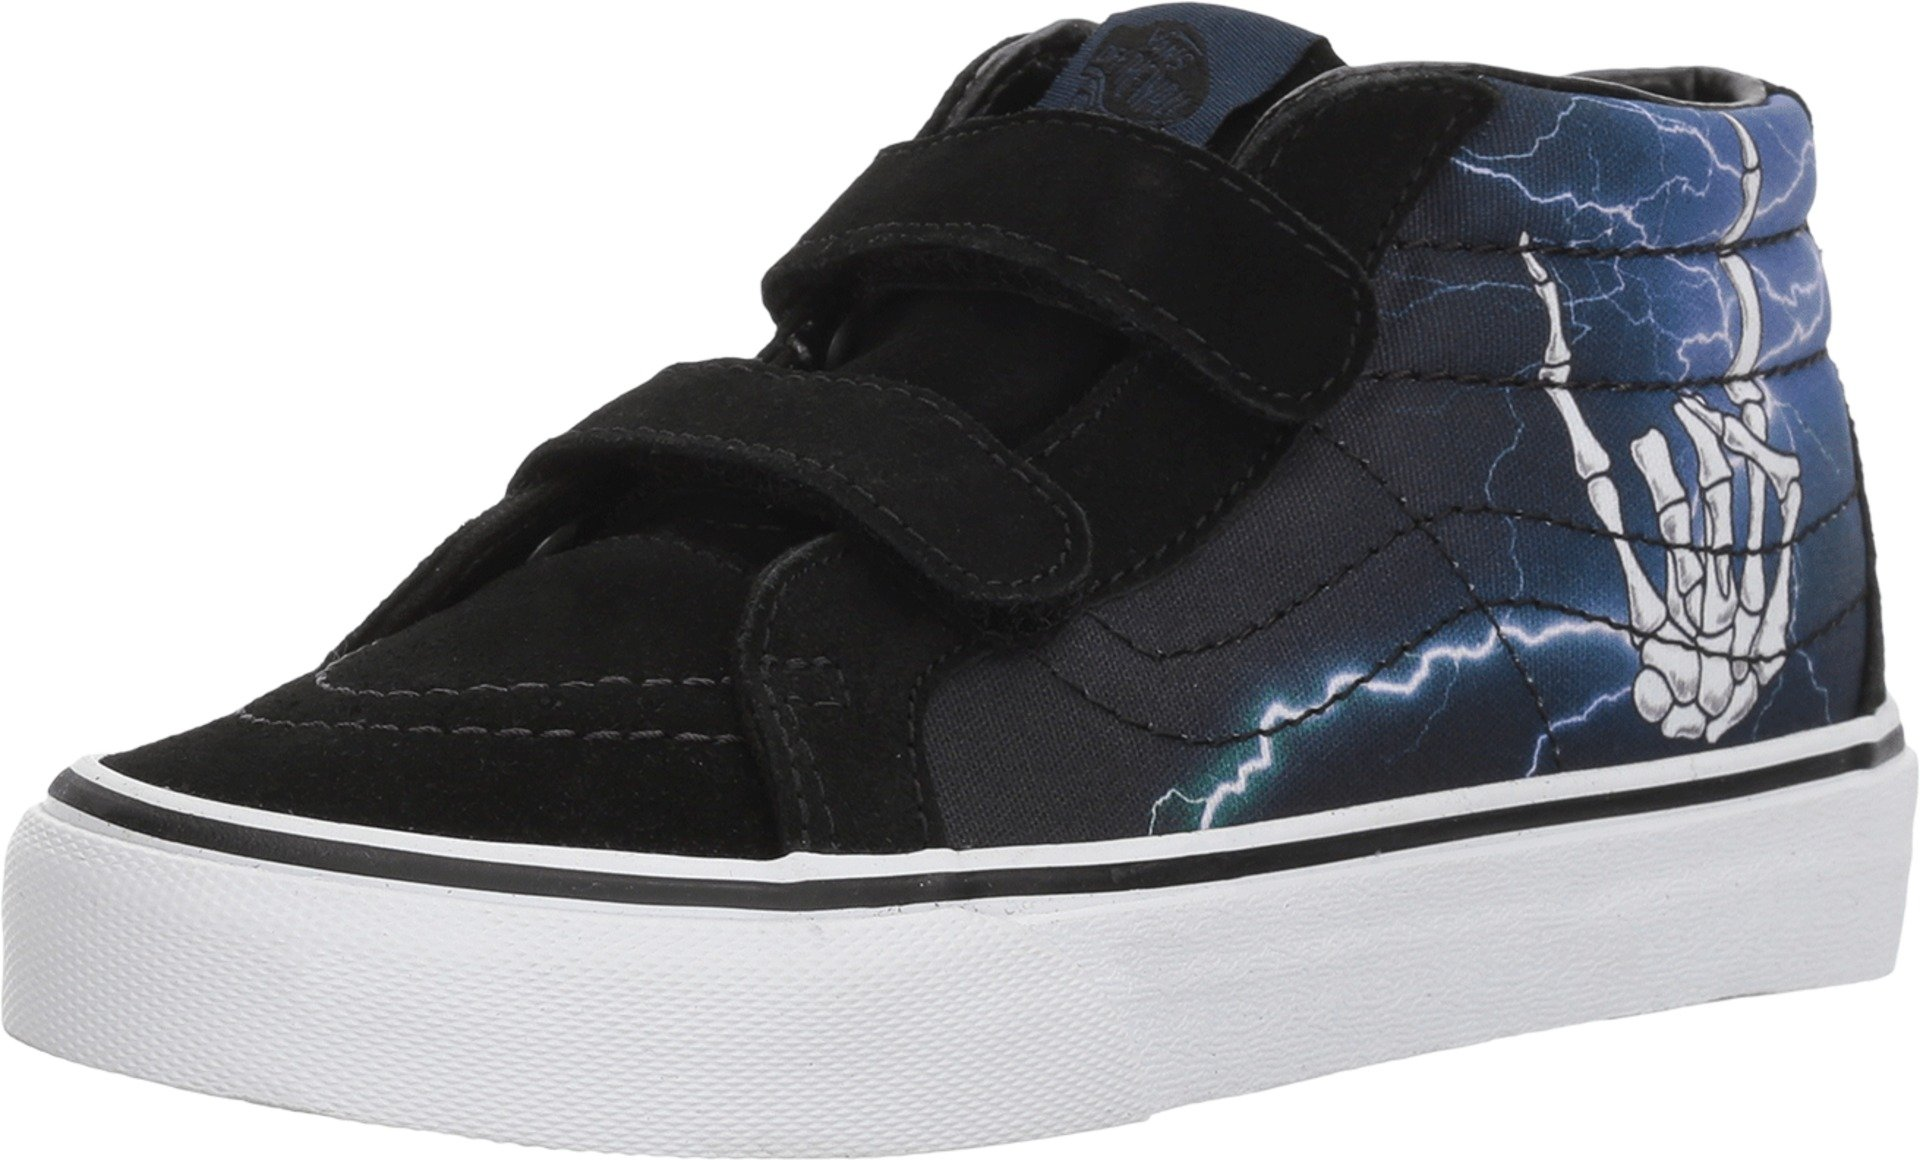 525d68a3e8 Galleon - Vans Kids Rocker Bones Lightning Black SK8-Mid Reissue V  VN0A346YQ8A Kid s Size 13.5